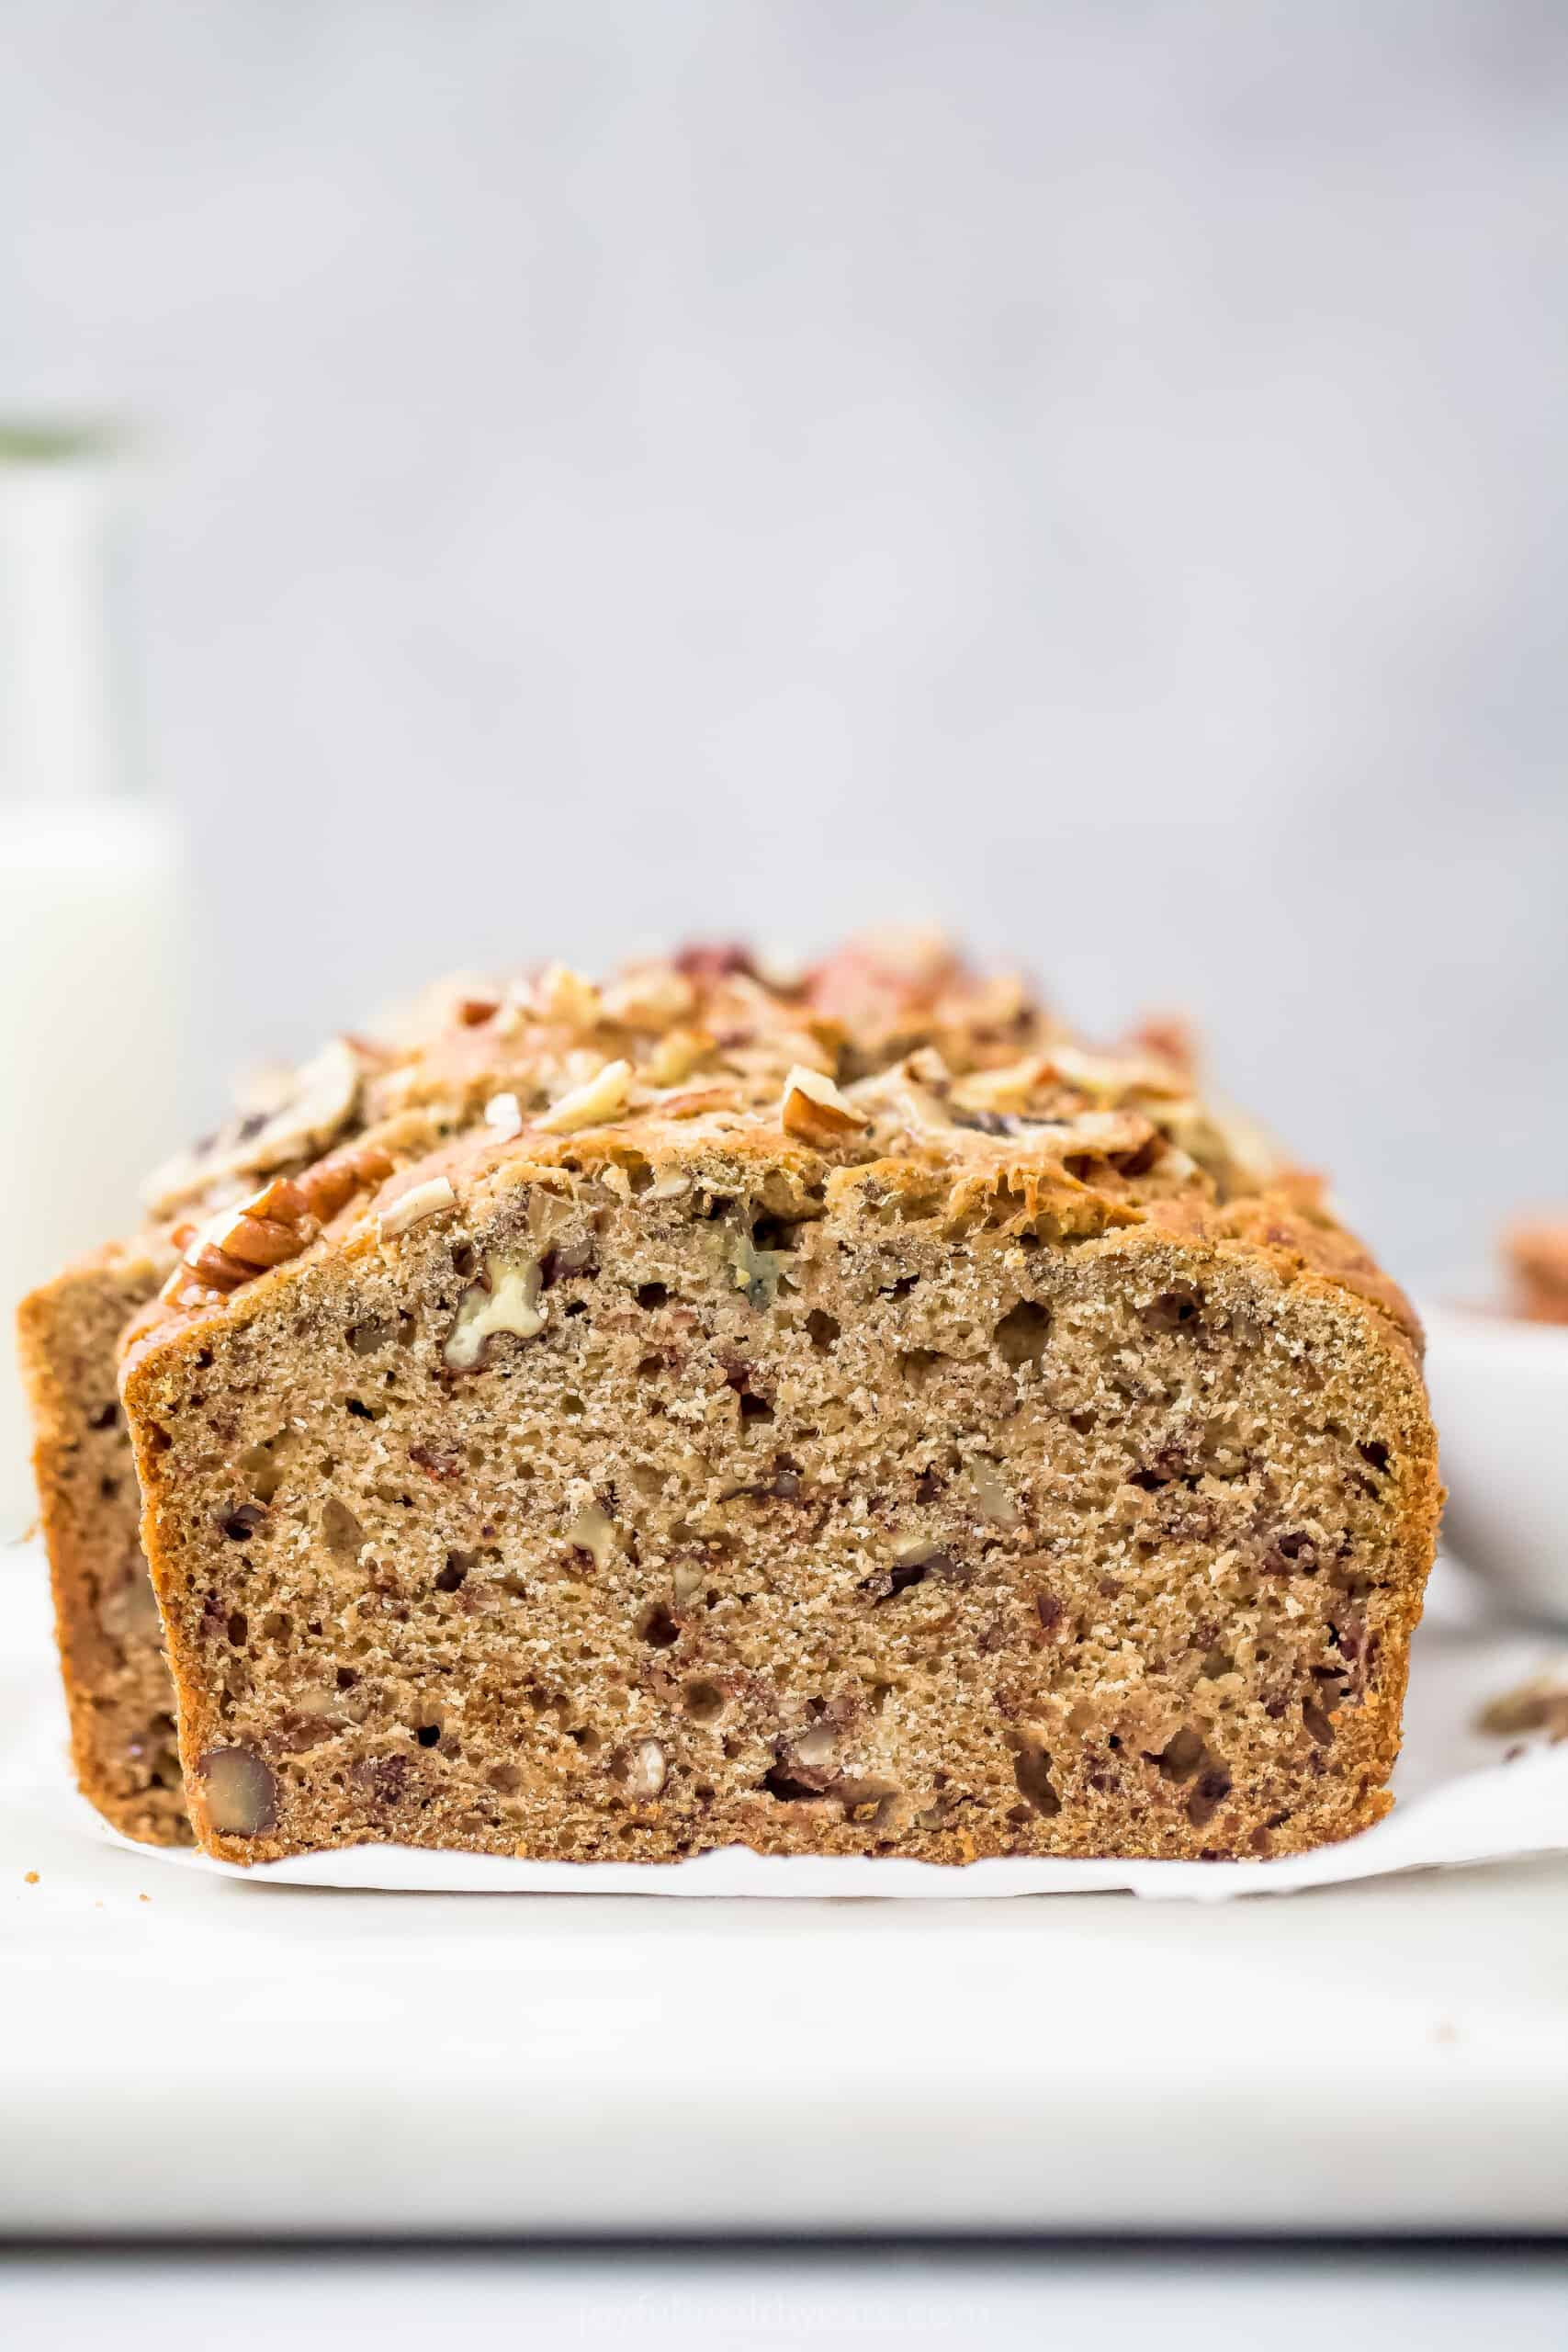 A Loaf of Banana Nut Bread on a White Surface with a Glass of Milk in the Background